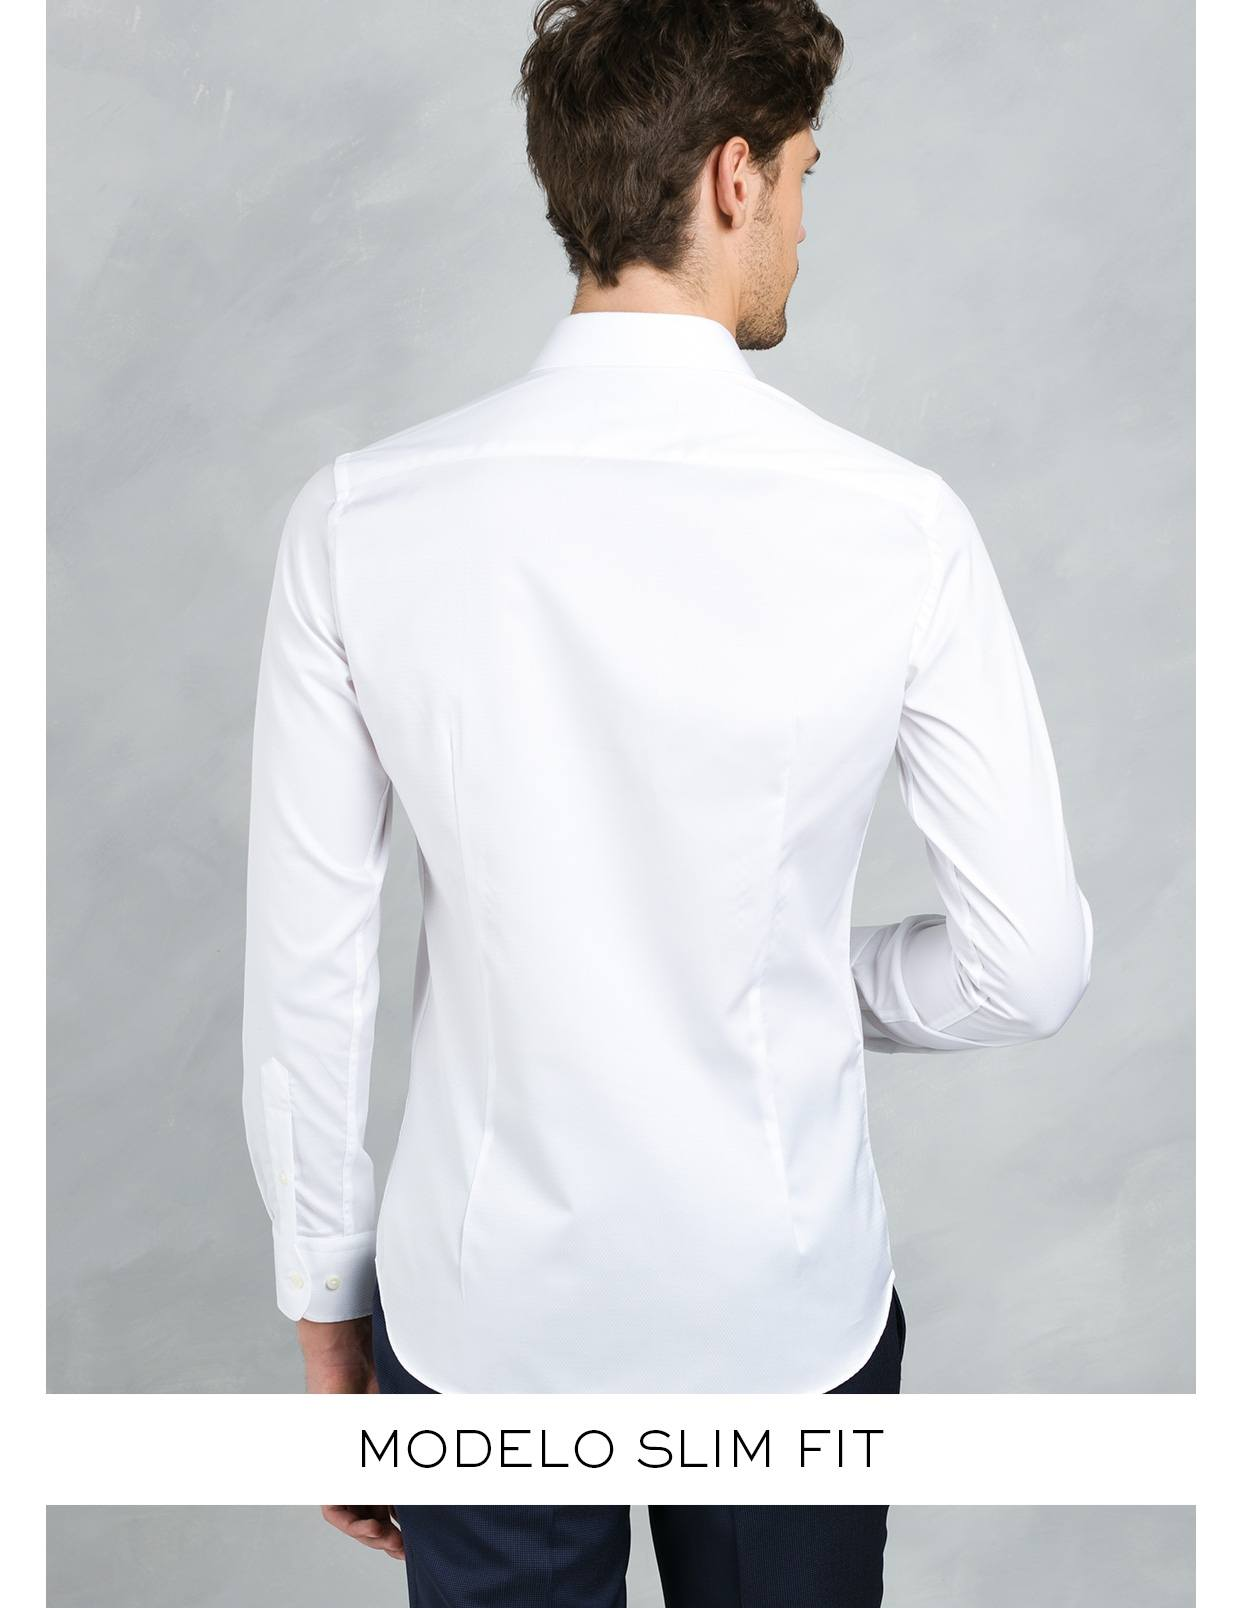 Camisa Formal Wear SLIM FIT cuello italiano modelo ROMA microtextura color blanco, 100% Algodón. - Ítem4